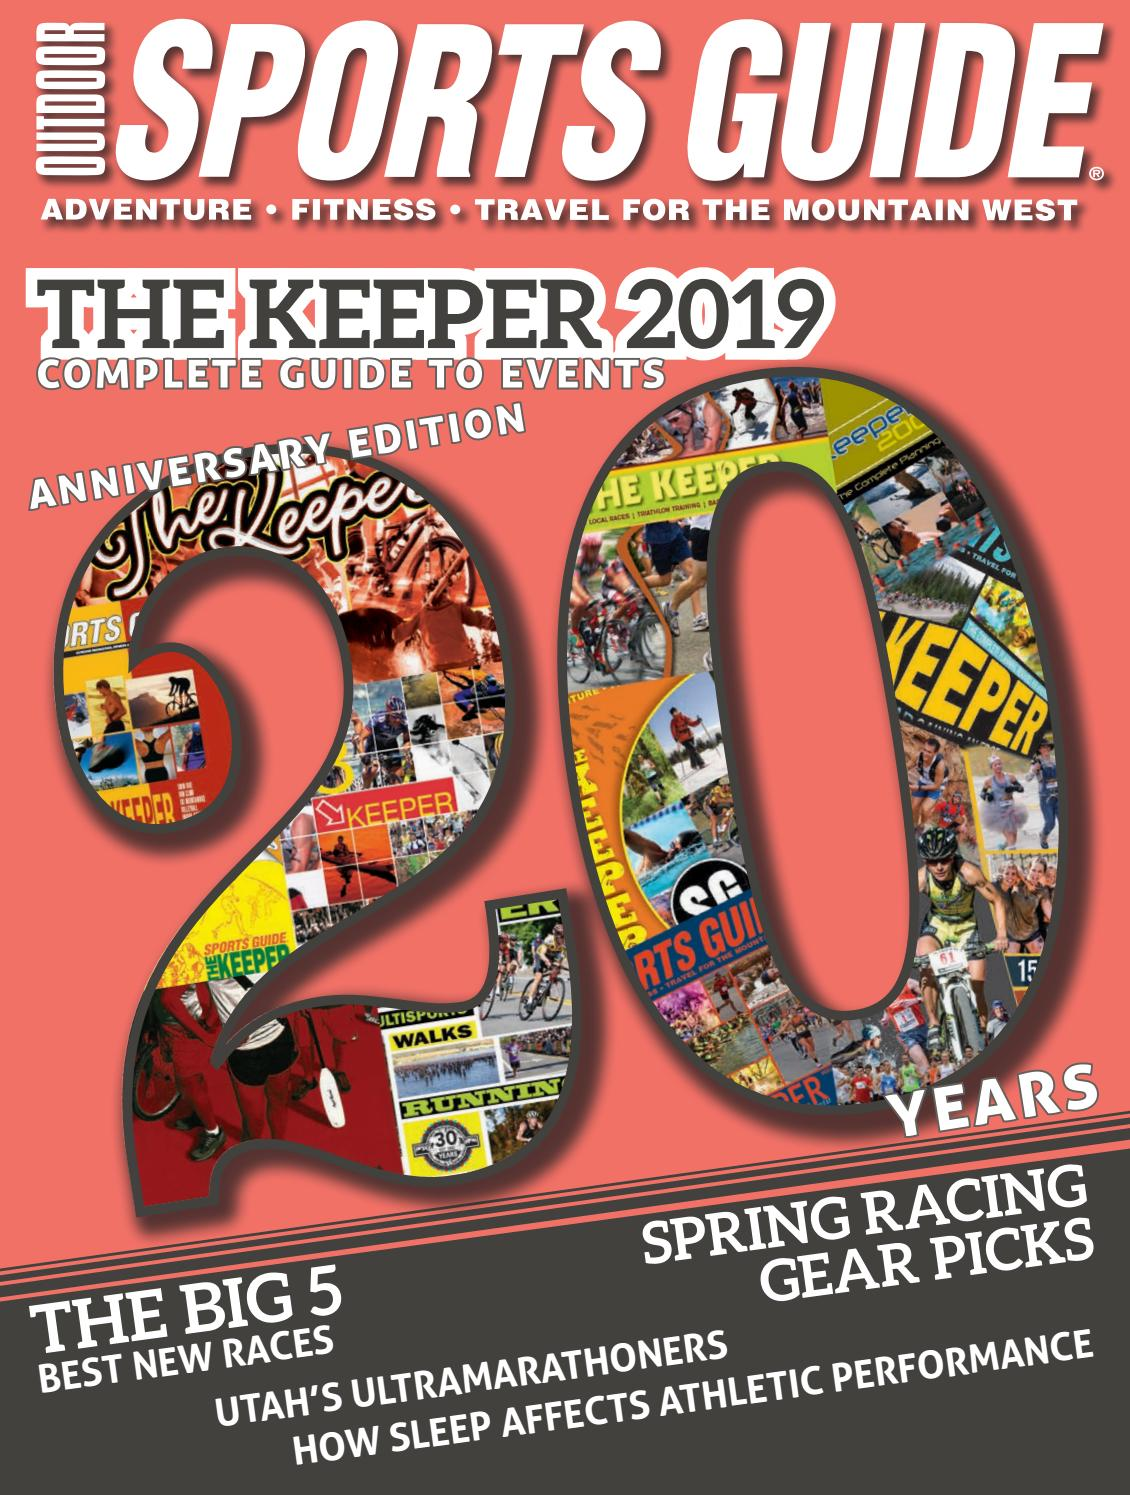 The Keeper 2019 By Outdoor Sports Guide Issuu